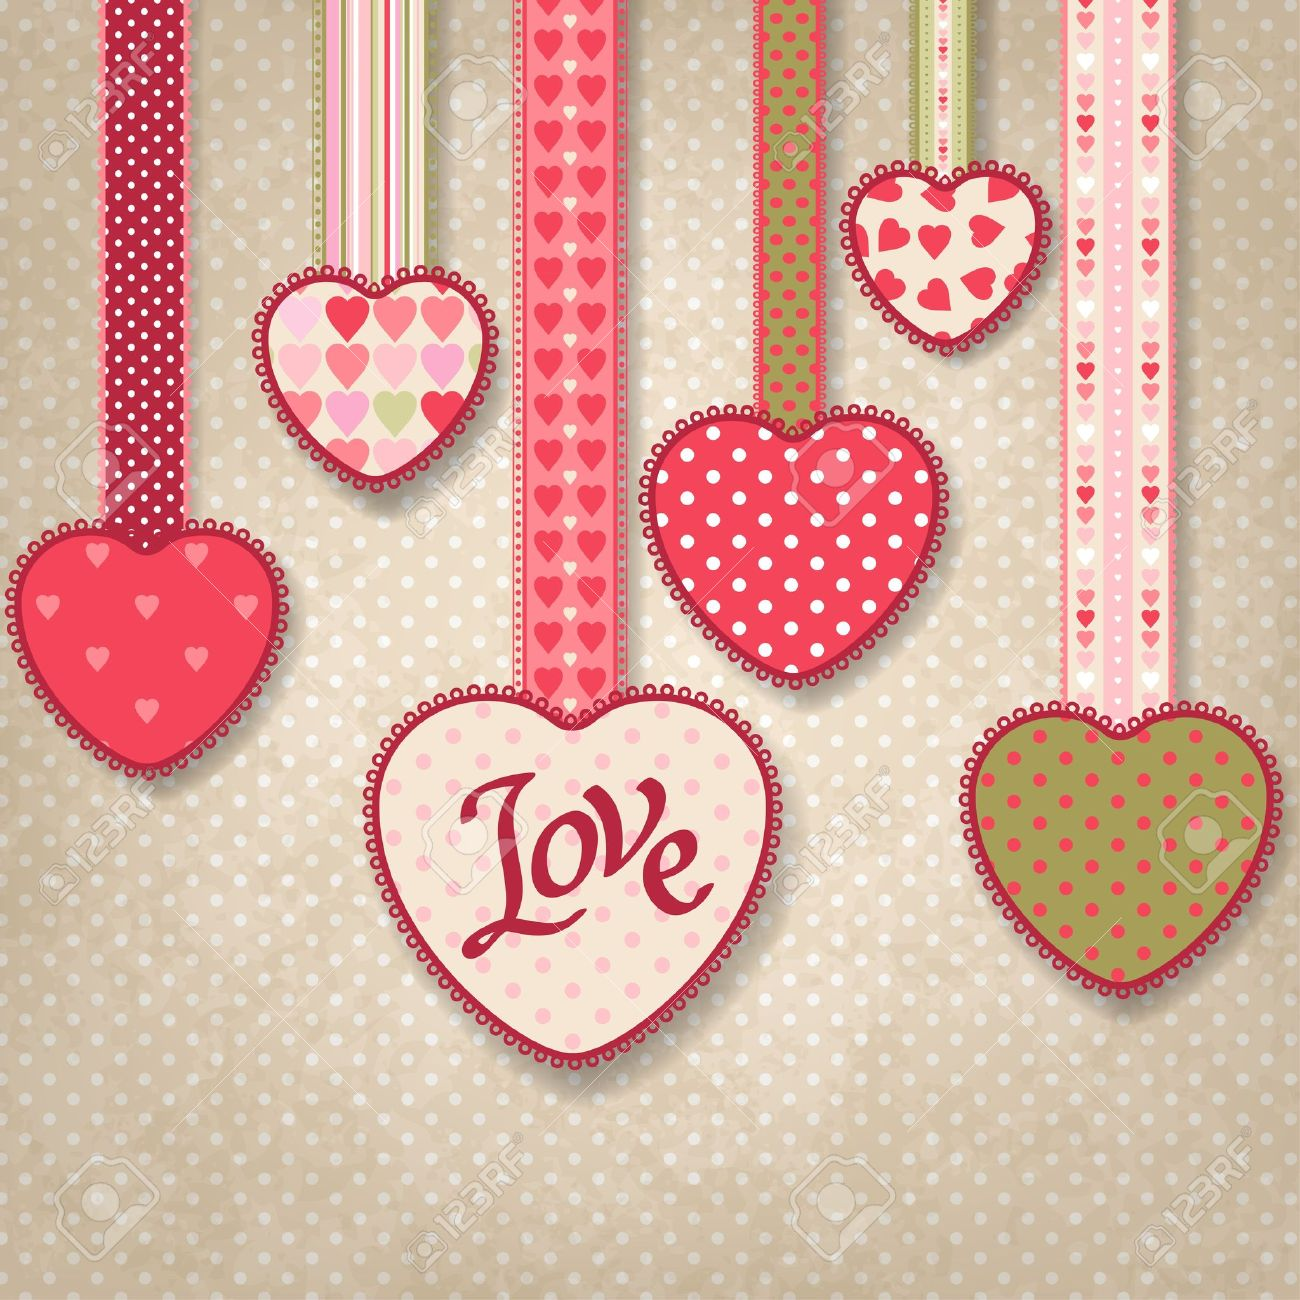 retro background of vintage design with hearts royalty free